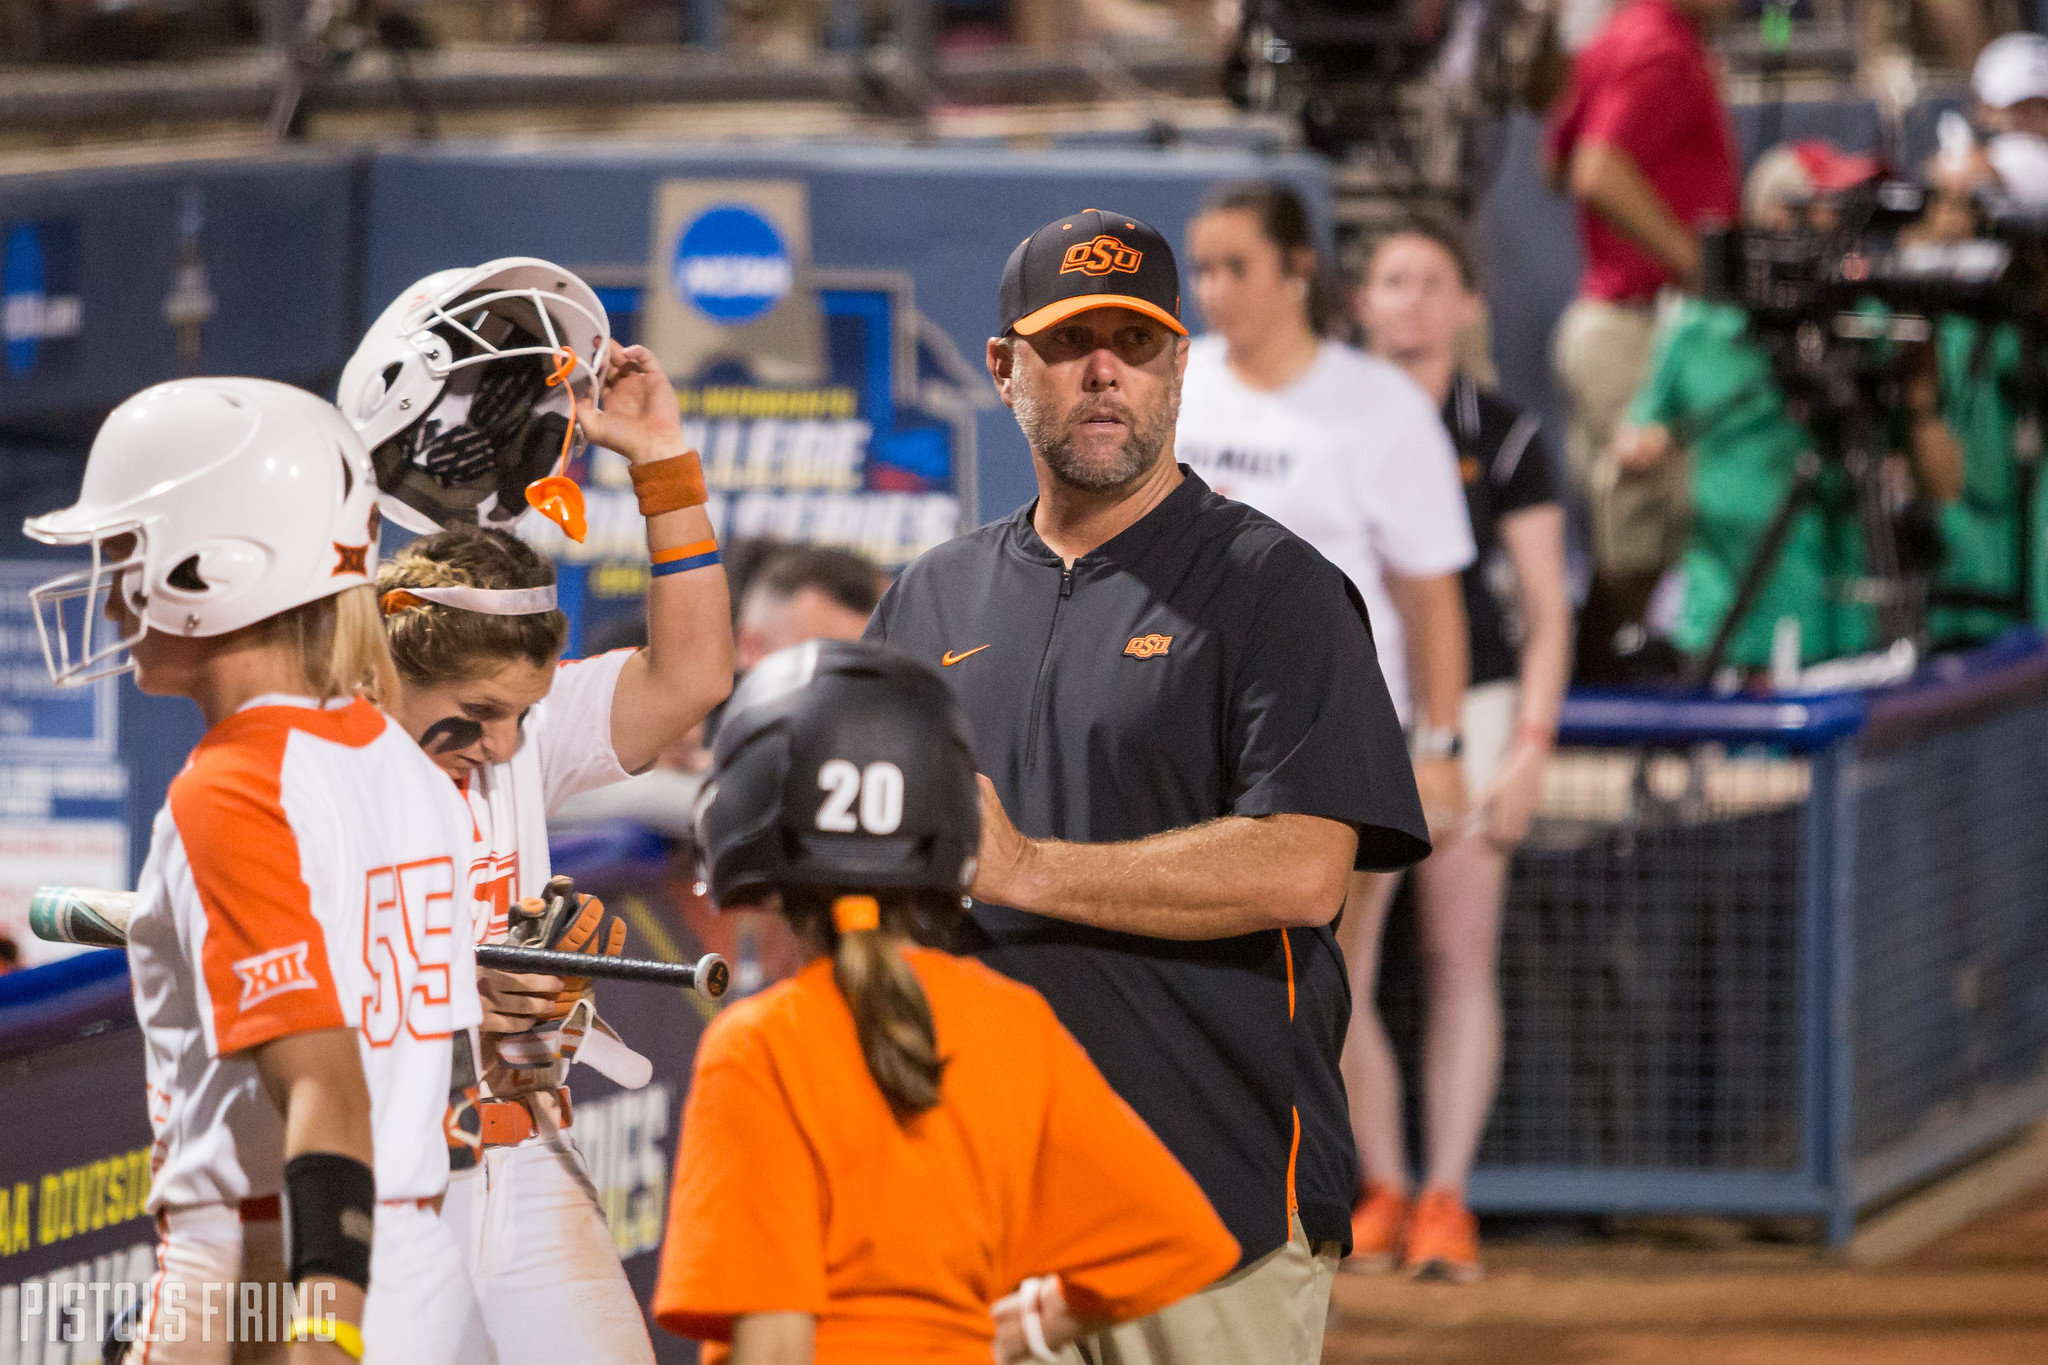 OSU Softball: ACC Pitcher of the Year to Transfer to Oklahoma State | Pistols Firing